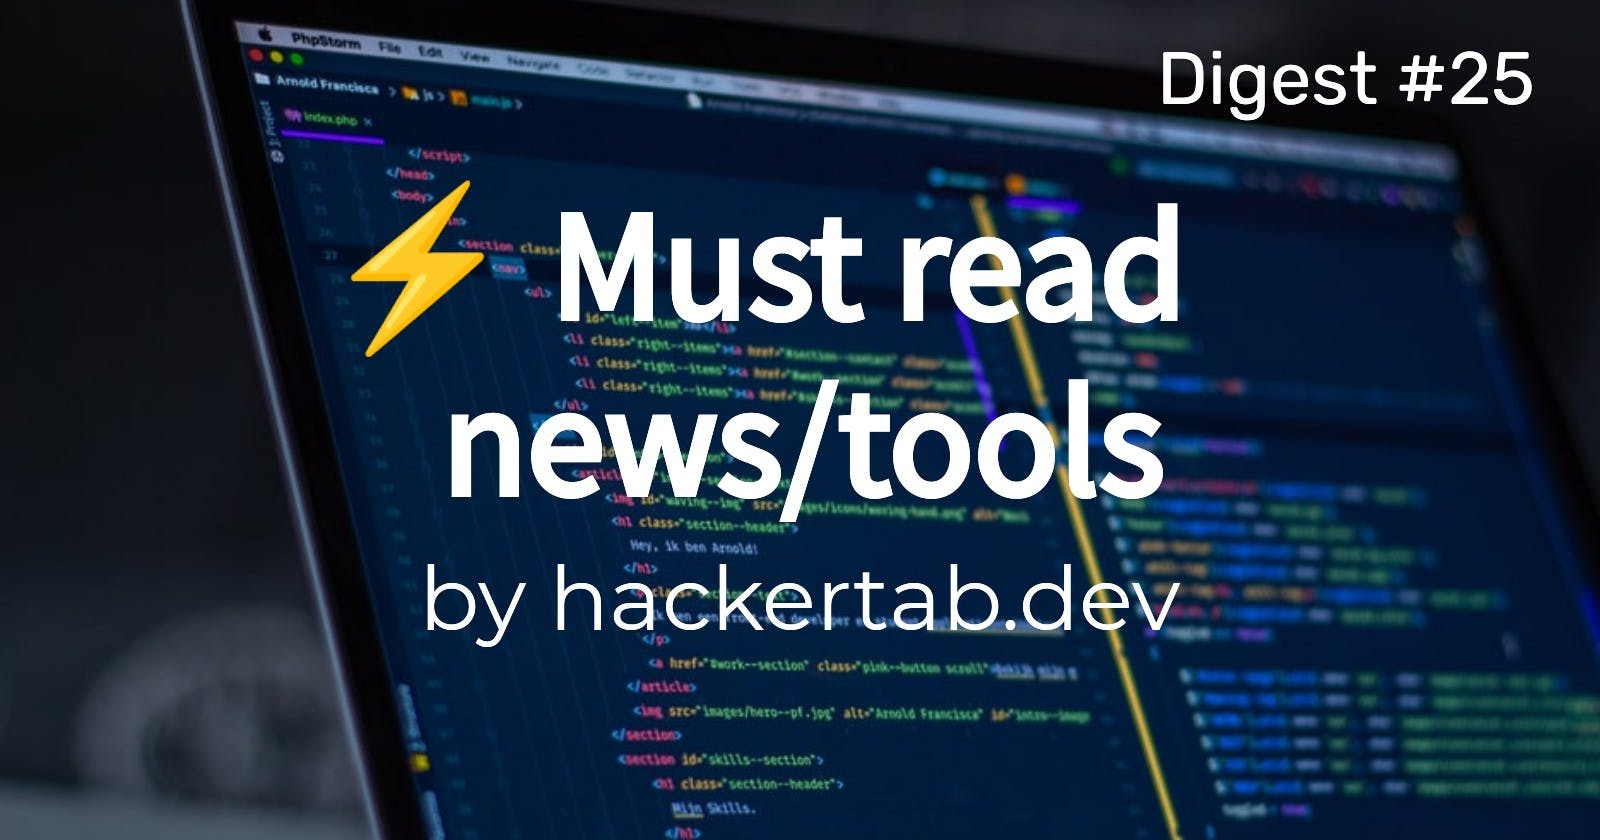 ⚡ Must read Tech news/tools of the day - Digest #25